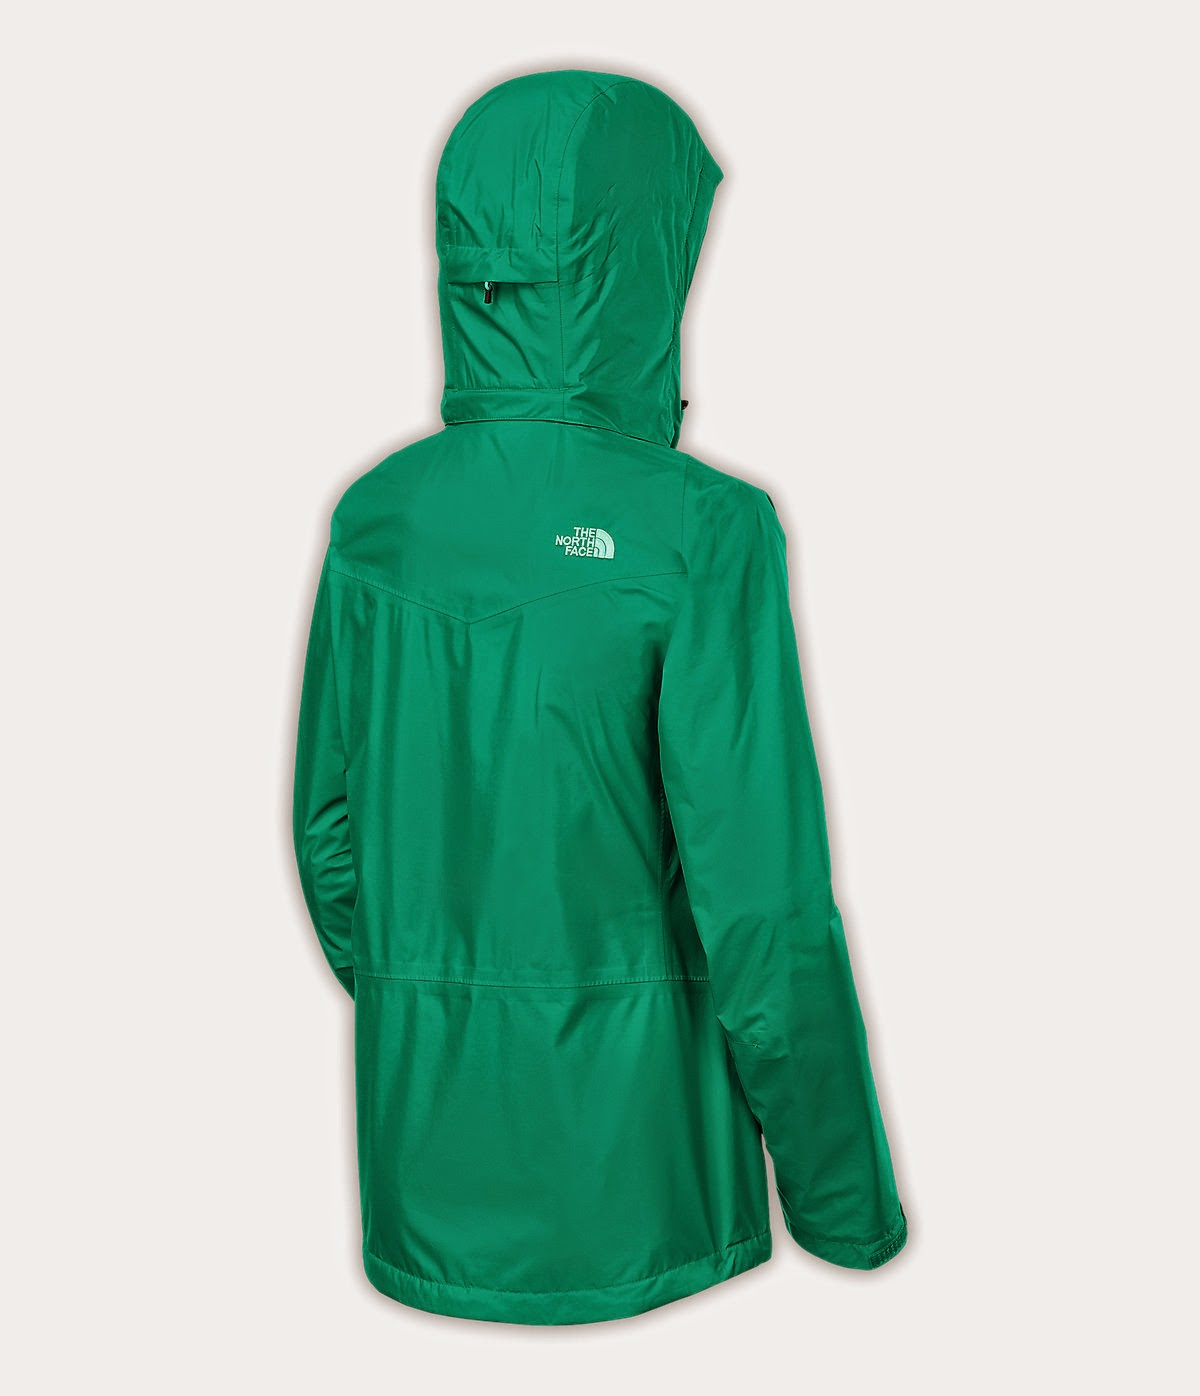 Jaket Gunung The North Face GORETEX